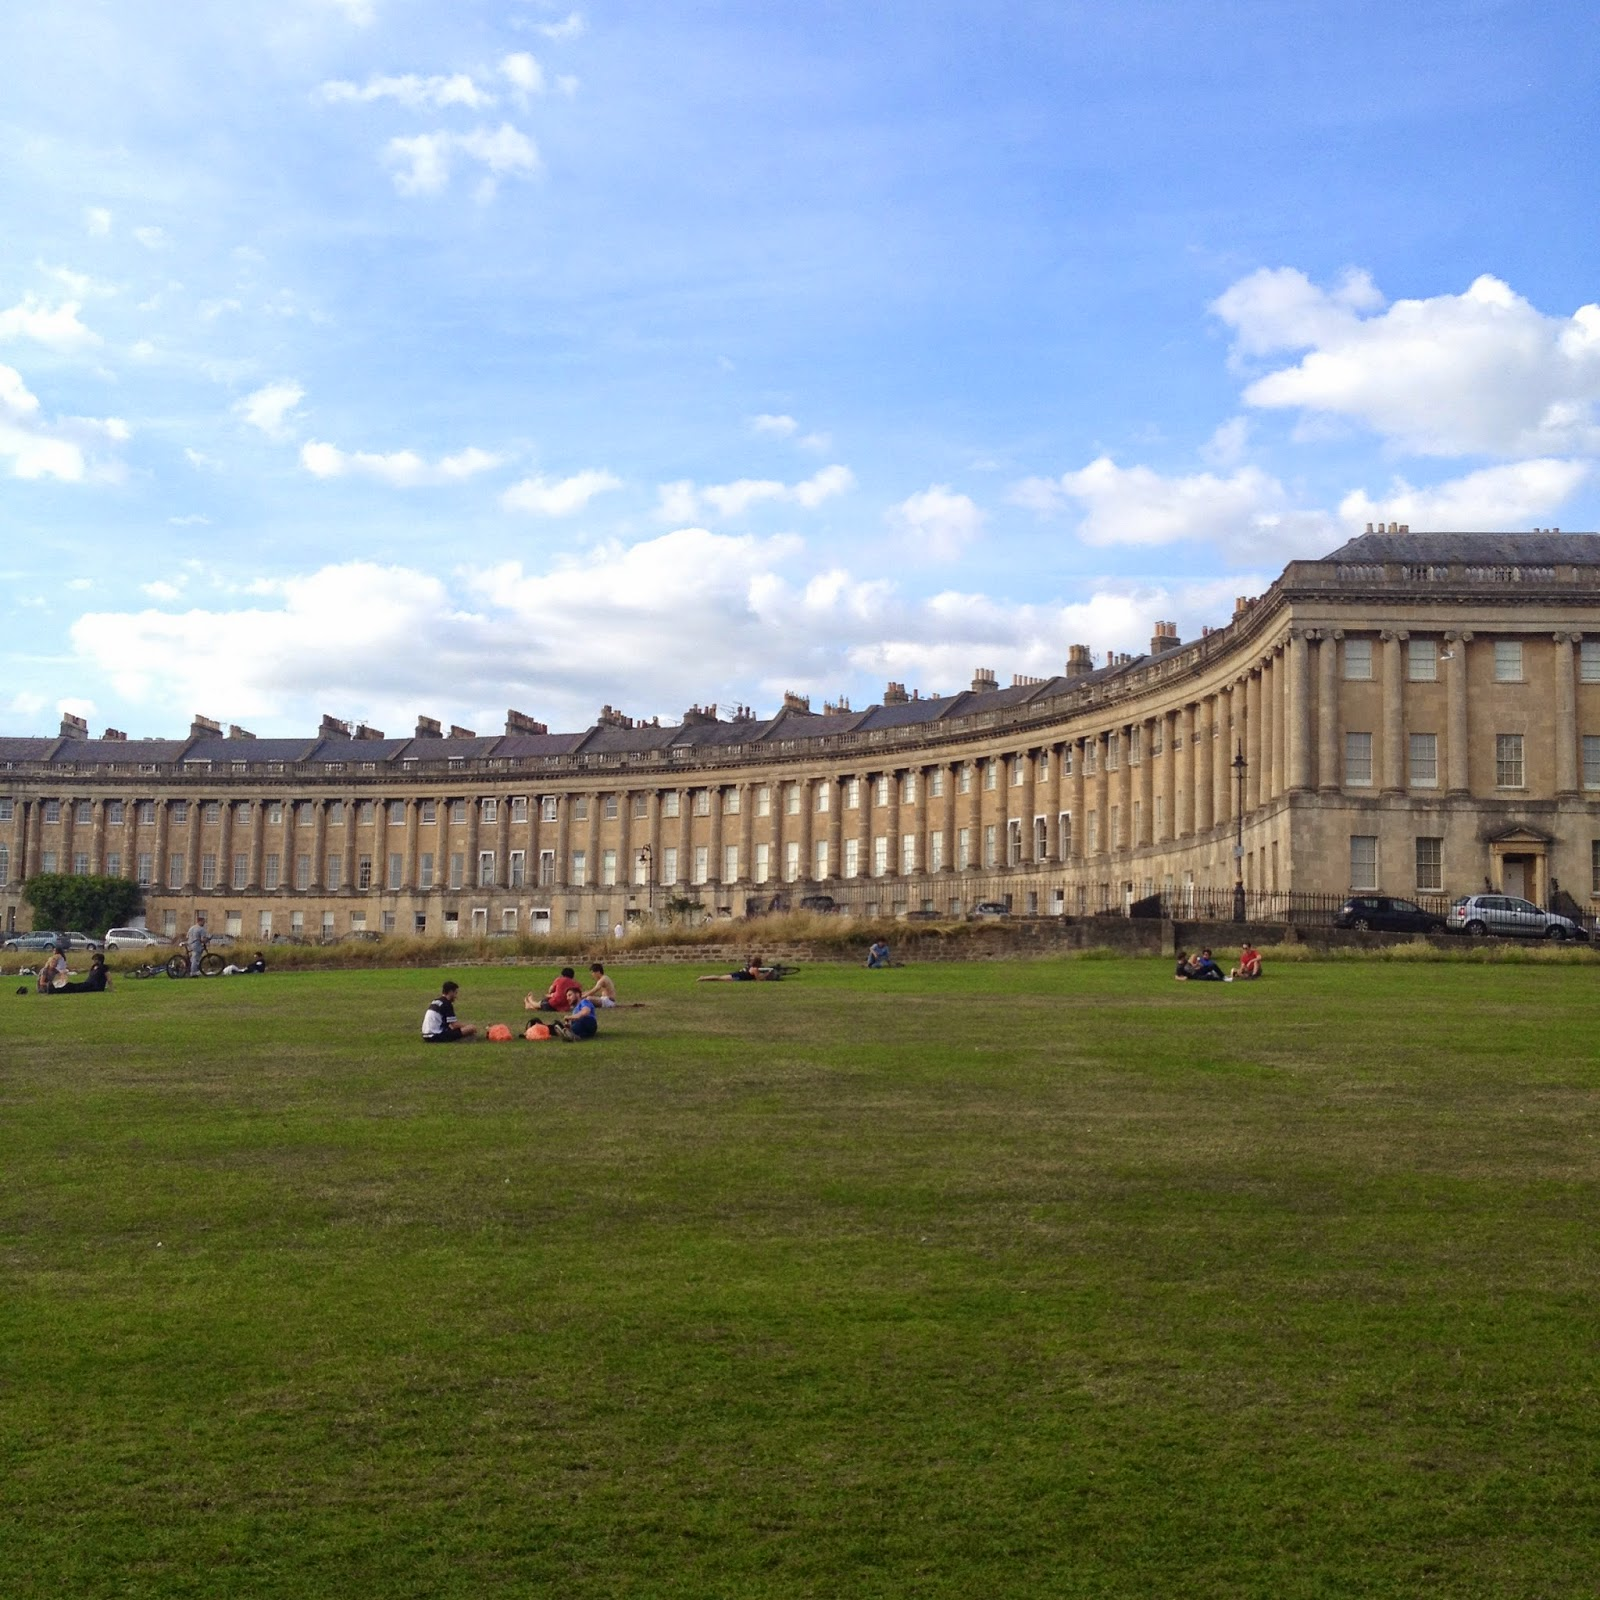 Royal Crescent Bath (photo credit: http://researchandramblings.blogspot.com/)